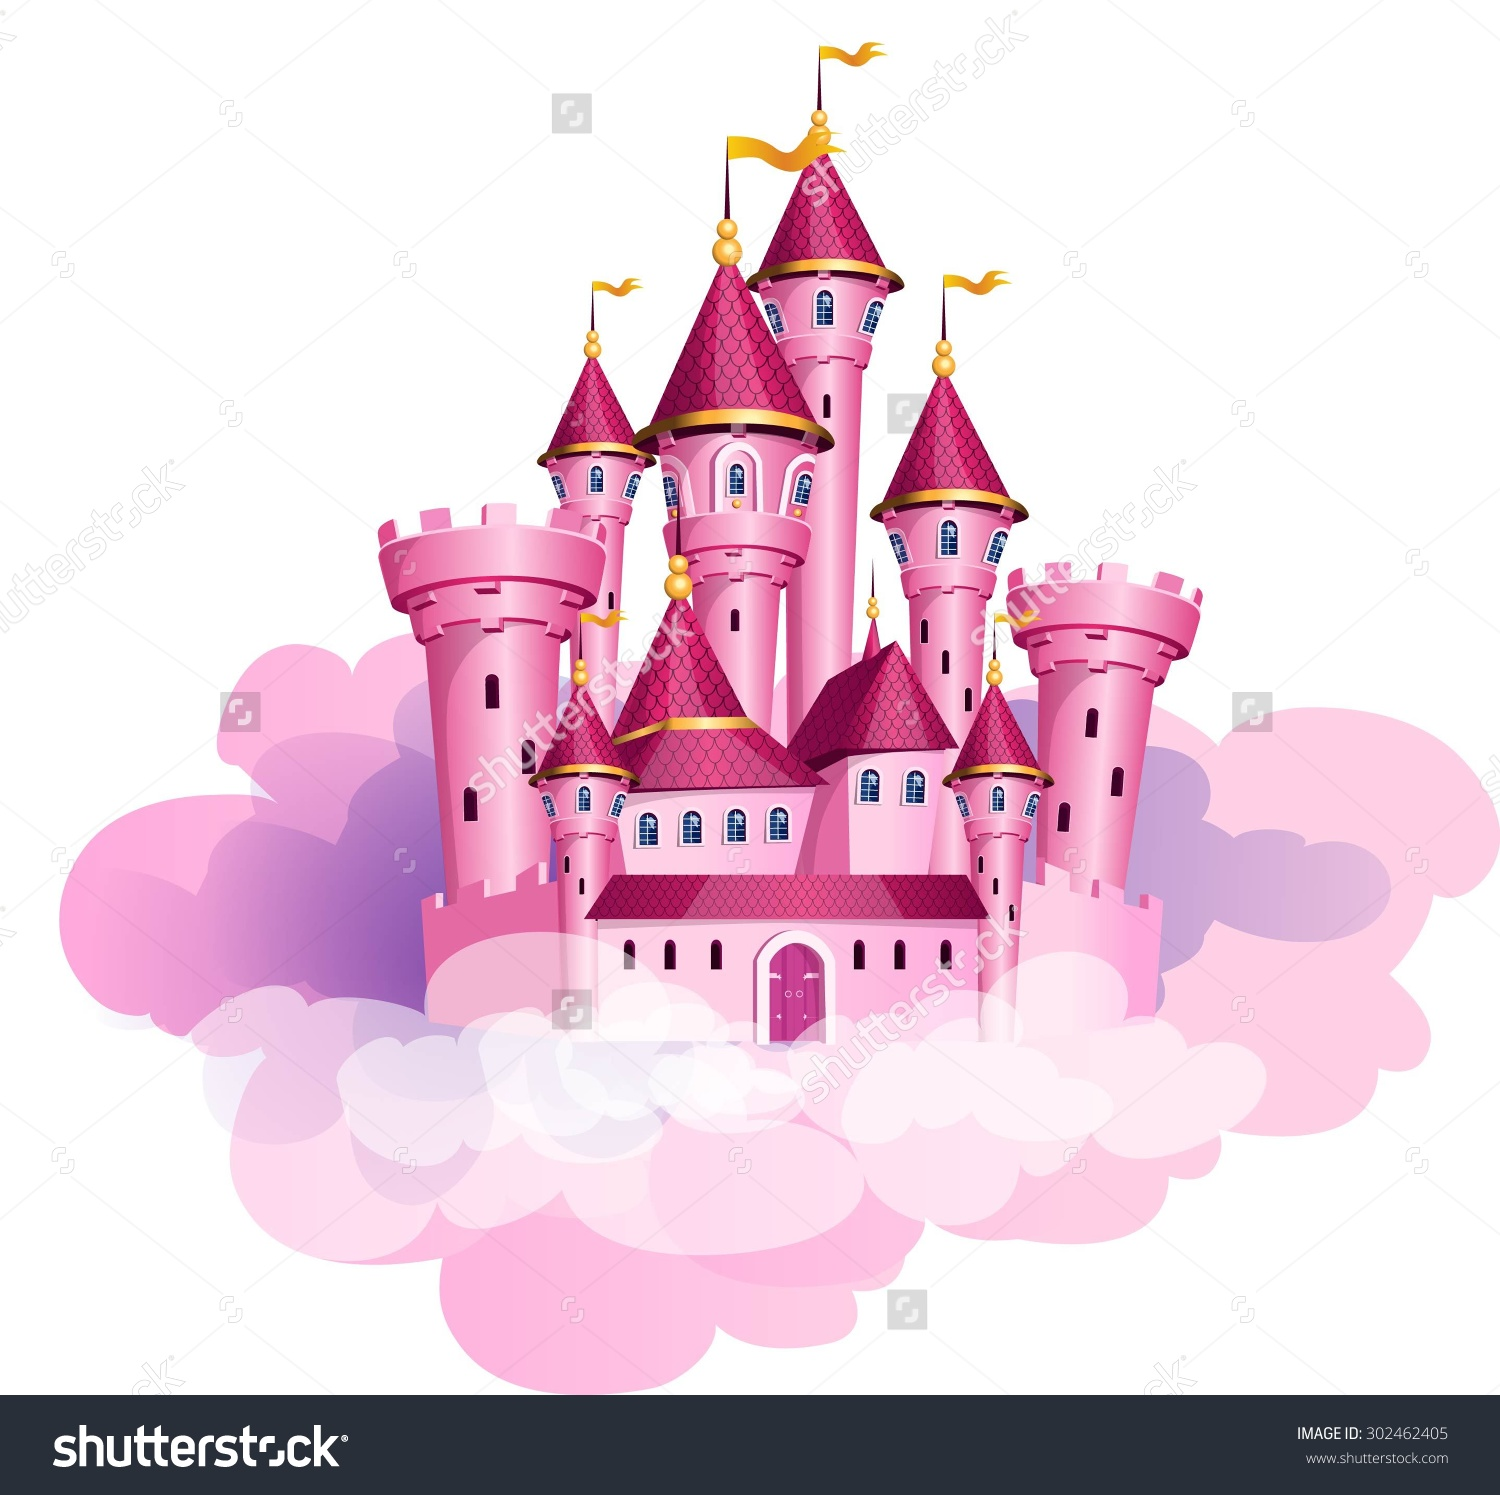 dream castle clipart clipground princess castle clipart cute princess castle clipart